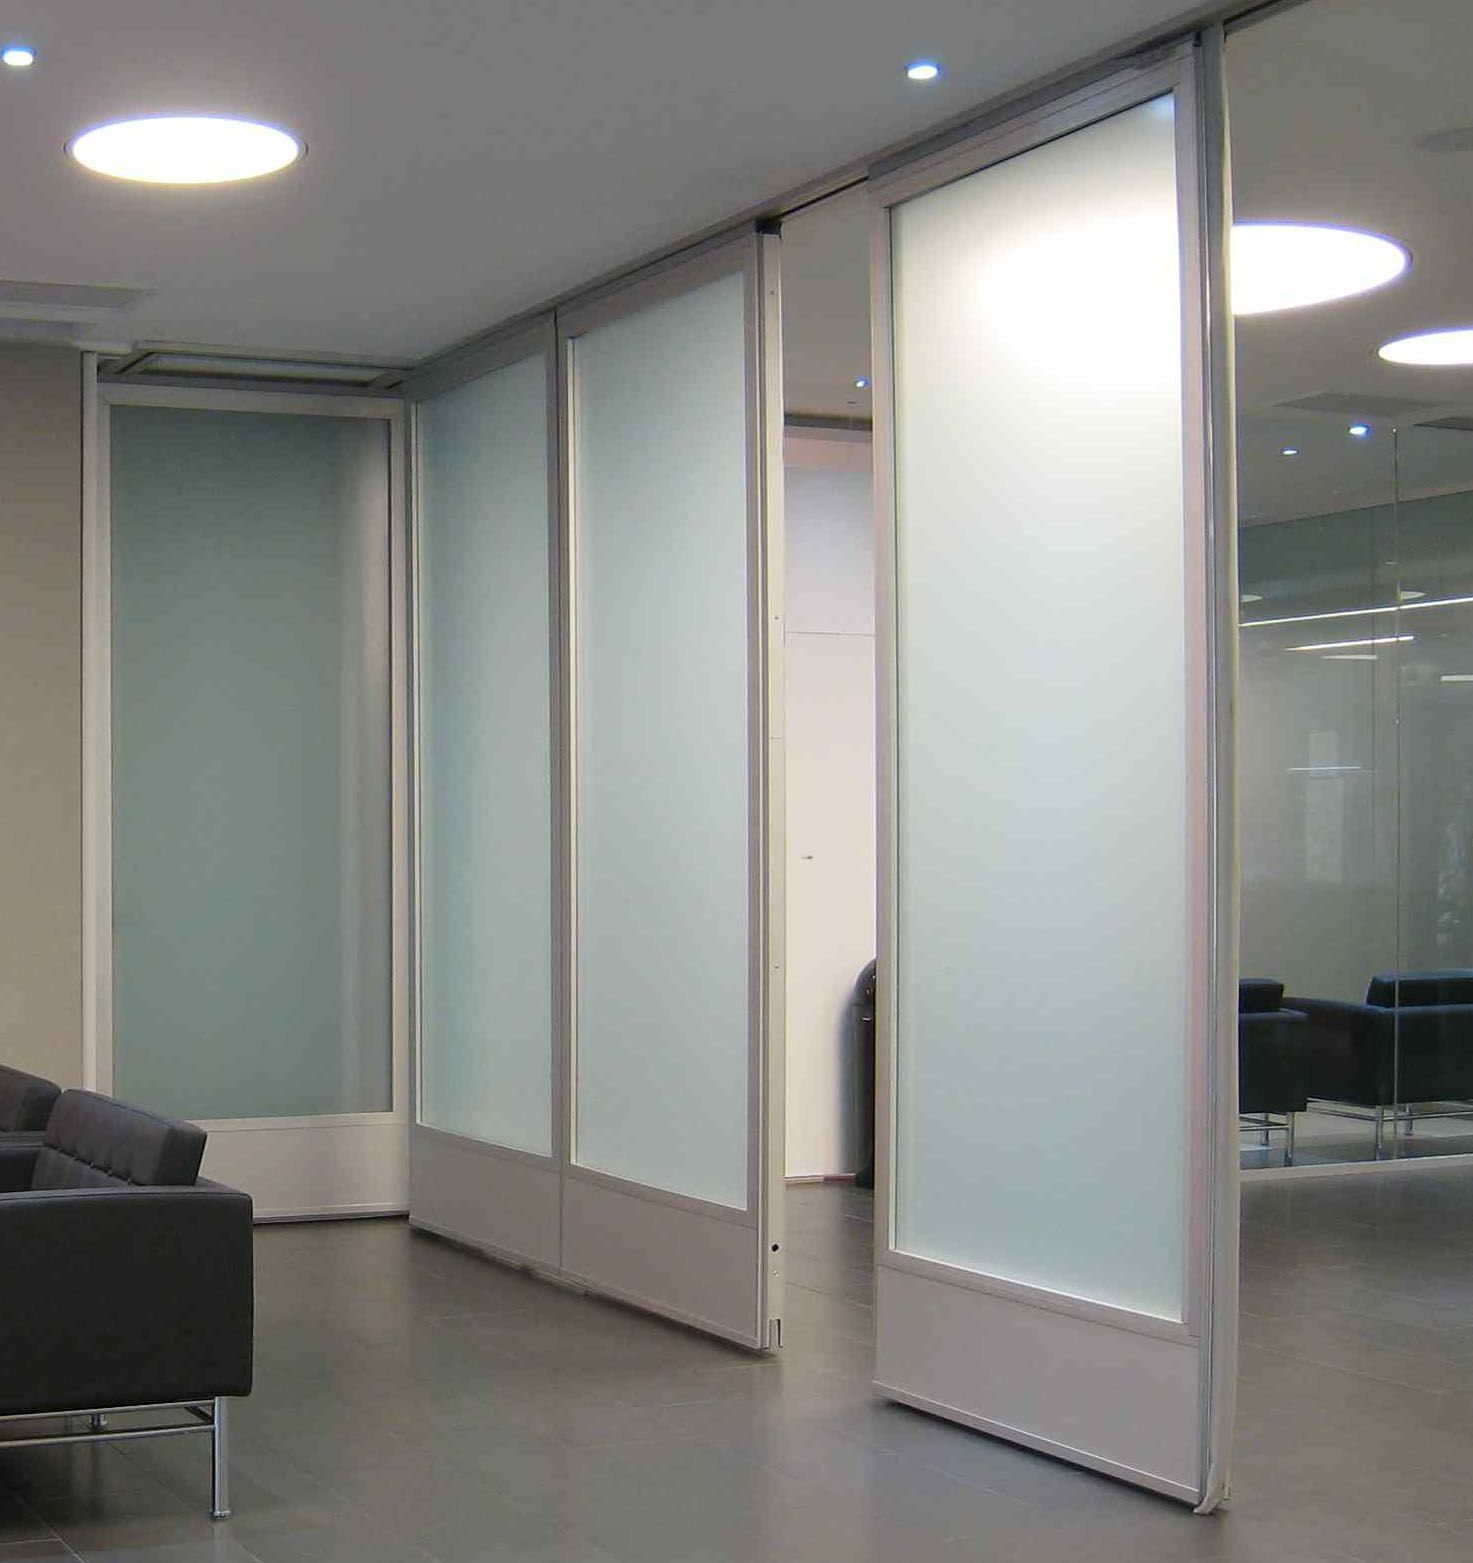 Opaque Glass Wall Dividers Google Search Home Improvement Pinterest Divider Glass Doors